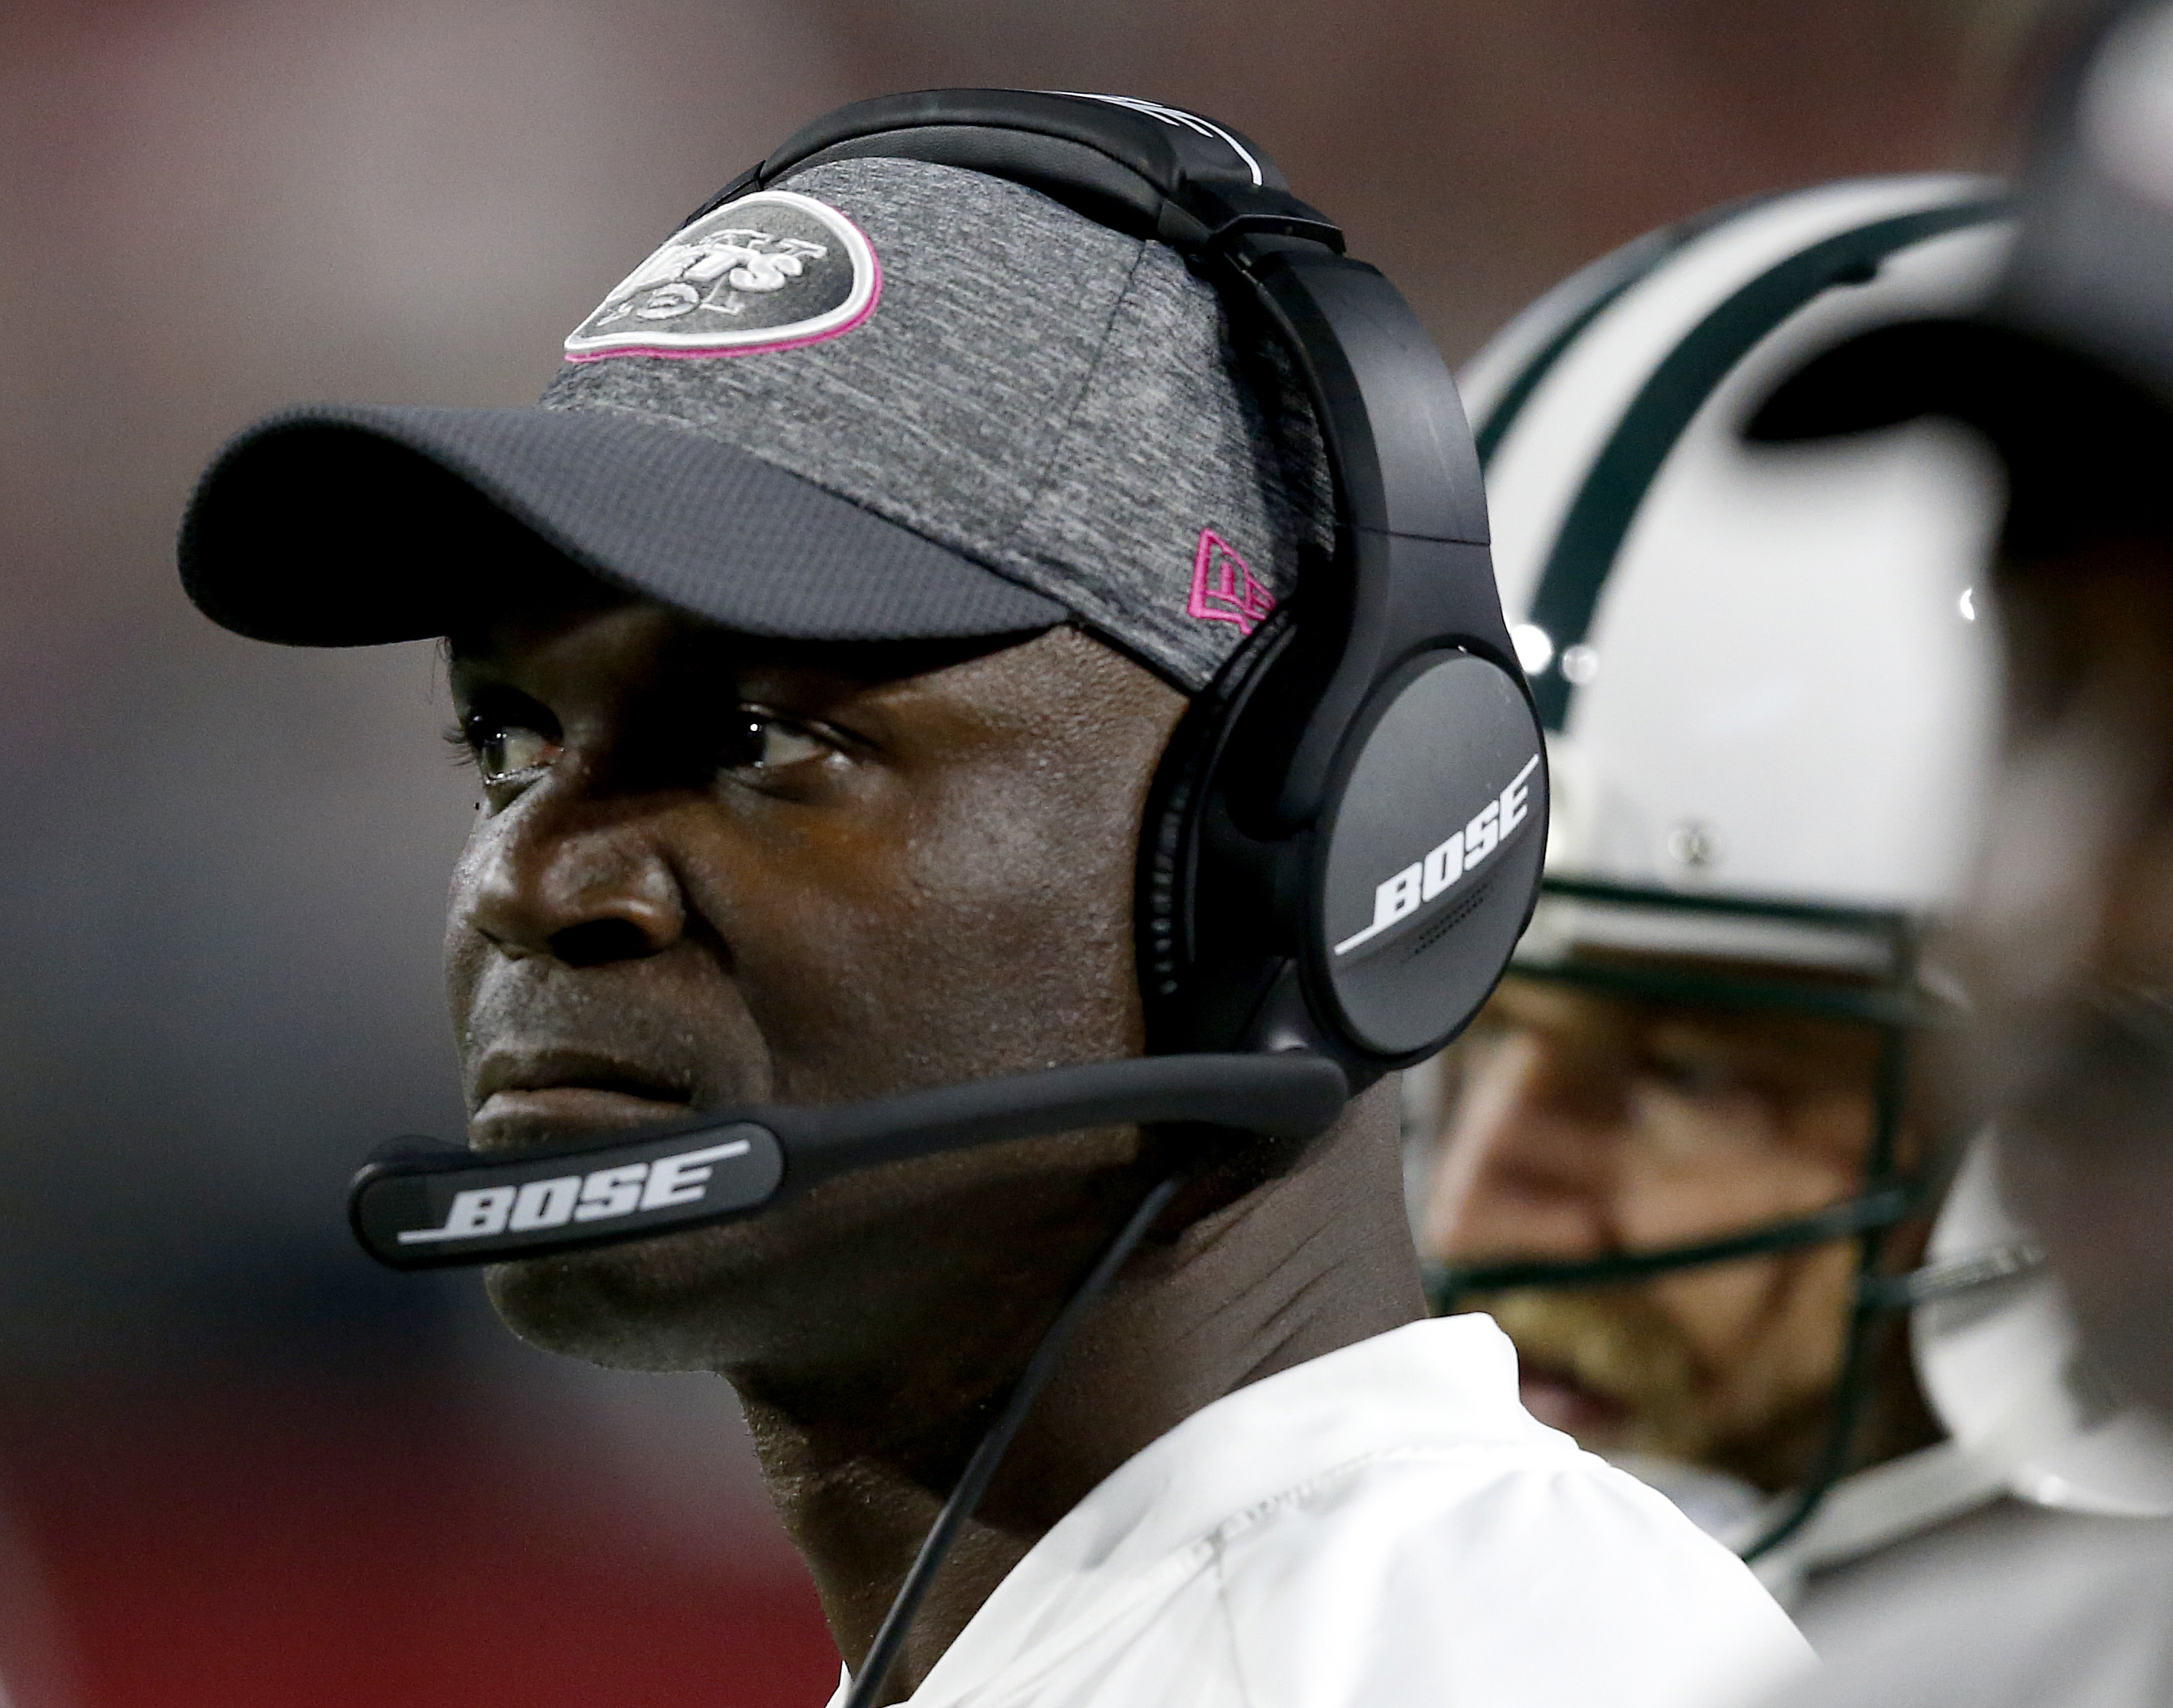 New York Jets head coach Todd Bowles watches from the sidelines during the second half of an NFL football game against the Arizona Cardinals, Monday, Oct. 17, 2016, in Glendale, Ariz. (AP Photo/Ross D. Franklin)